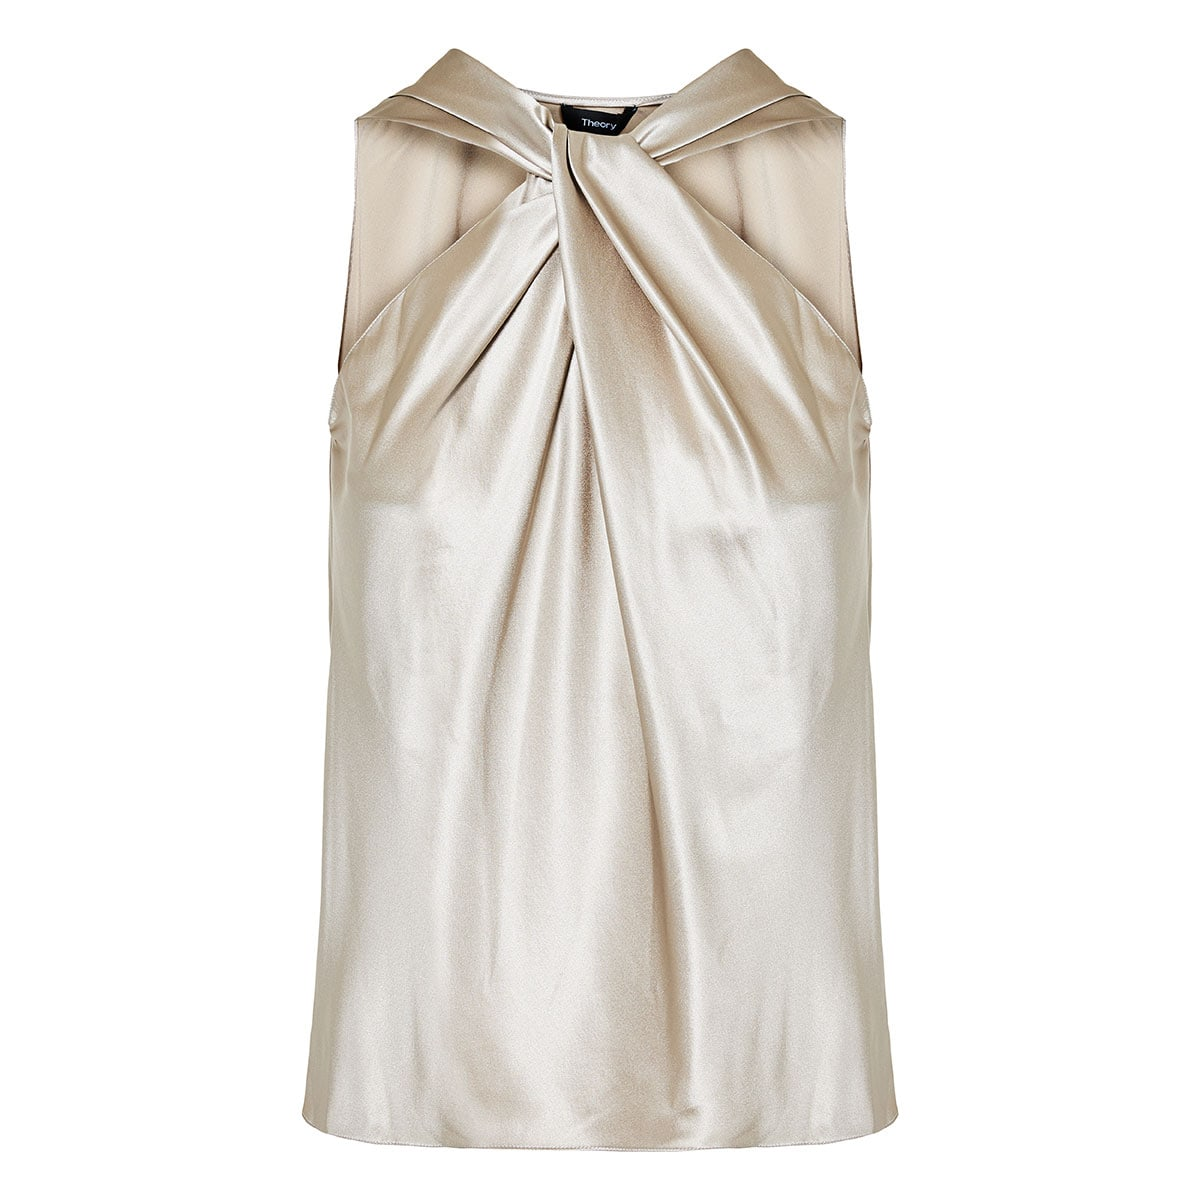 Knotted satin top